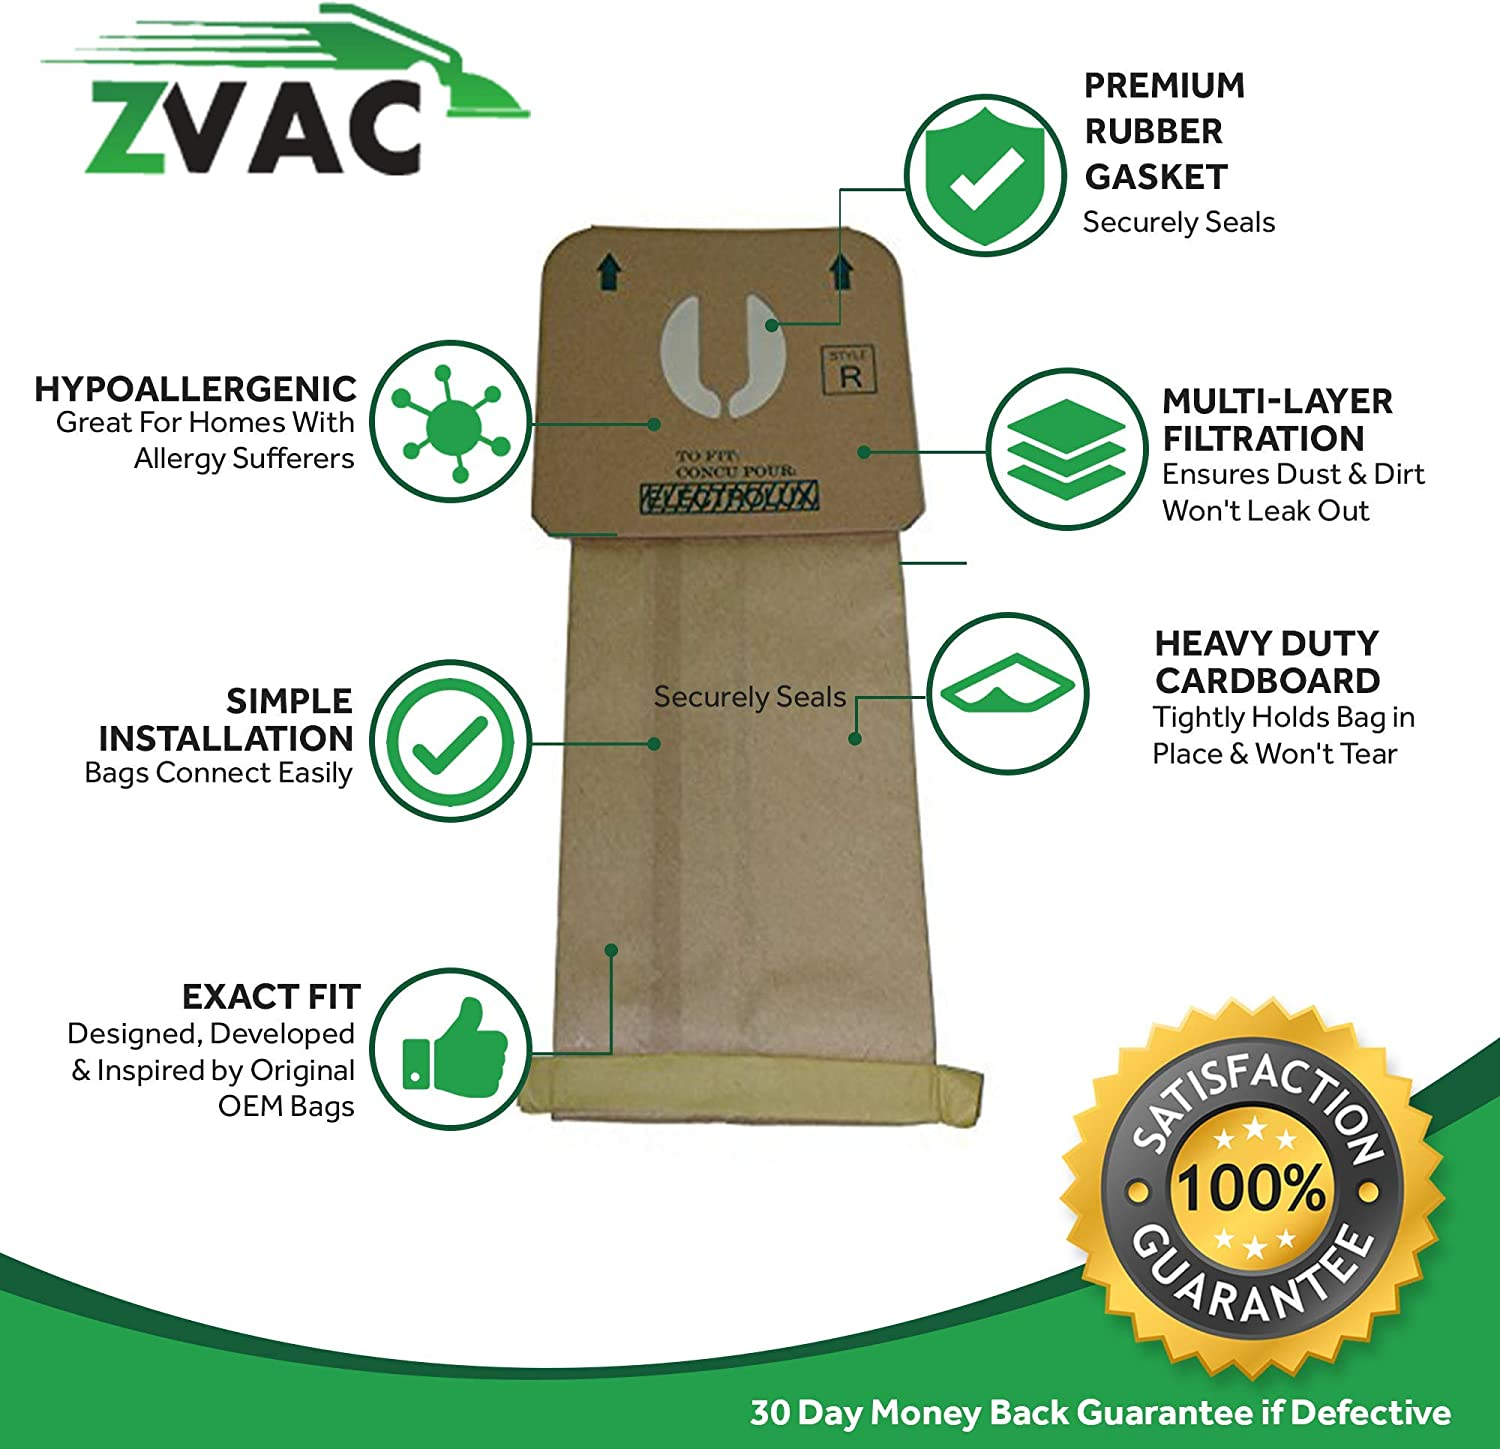 Epic 8000 10 Also Fits The LUX 9000 Model Vacuum Cleaners Electrolux Renaissance MicroFiltration Style R Premium Vacuum Bags; Fits Electrolux Renaissance Guardian Series by ZVac